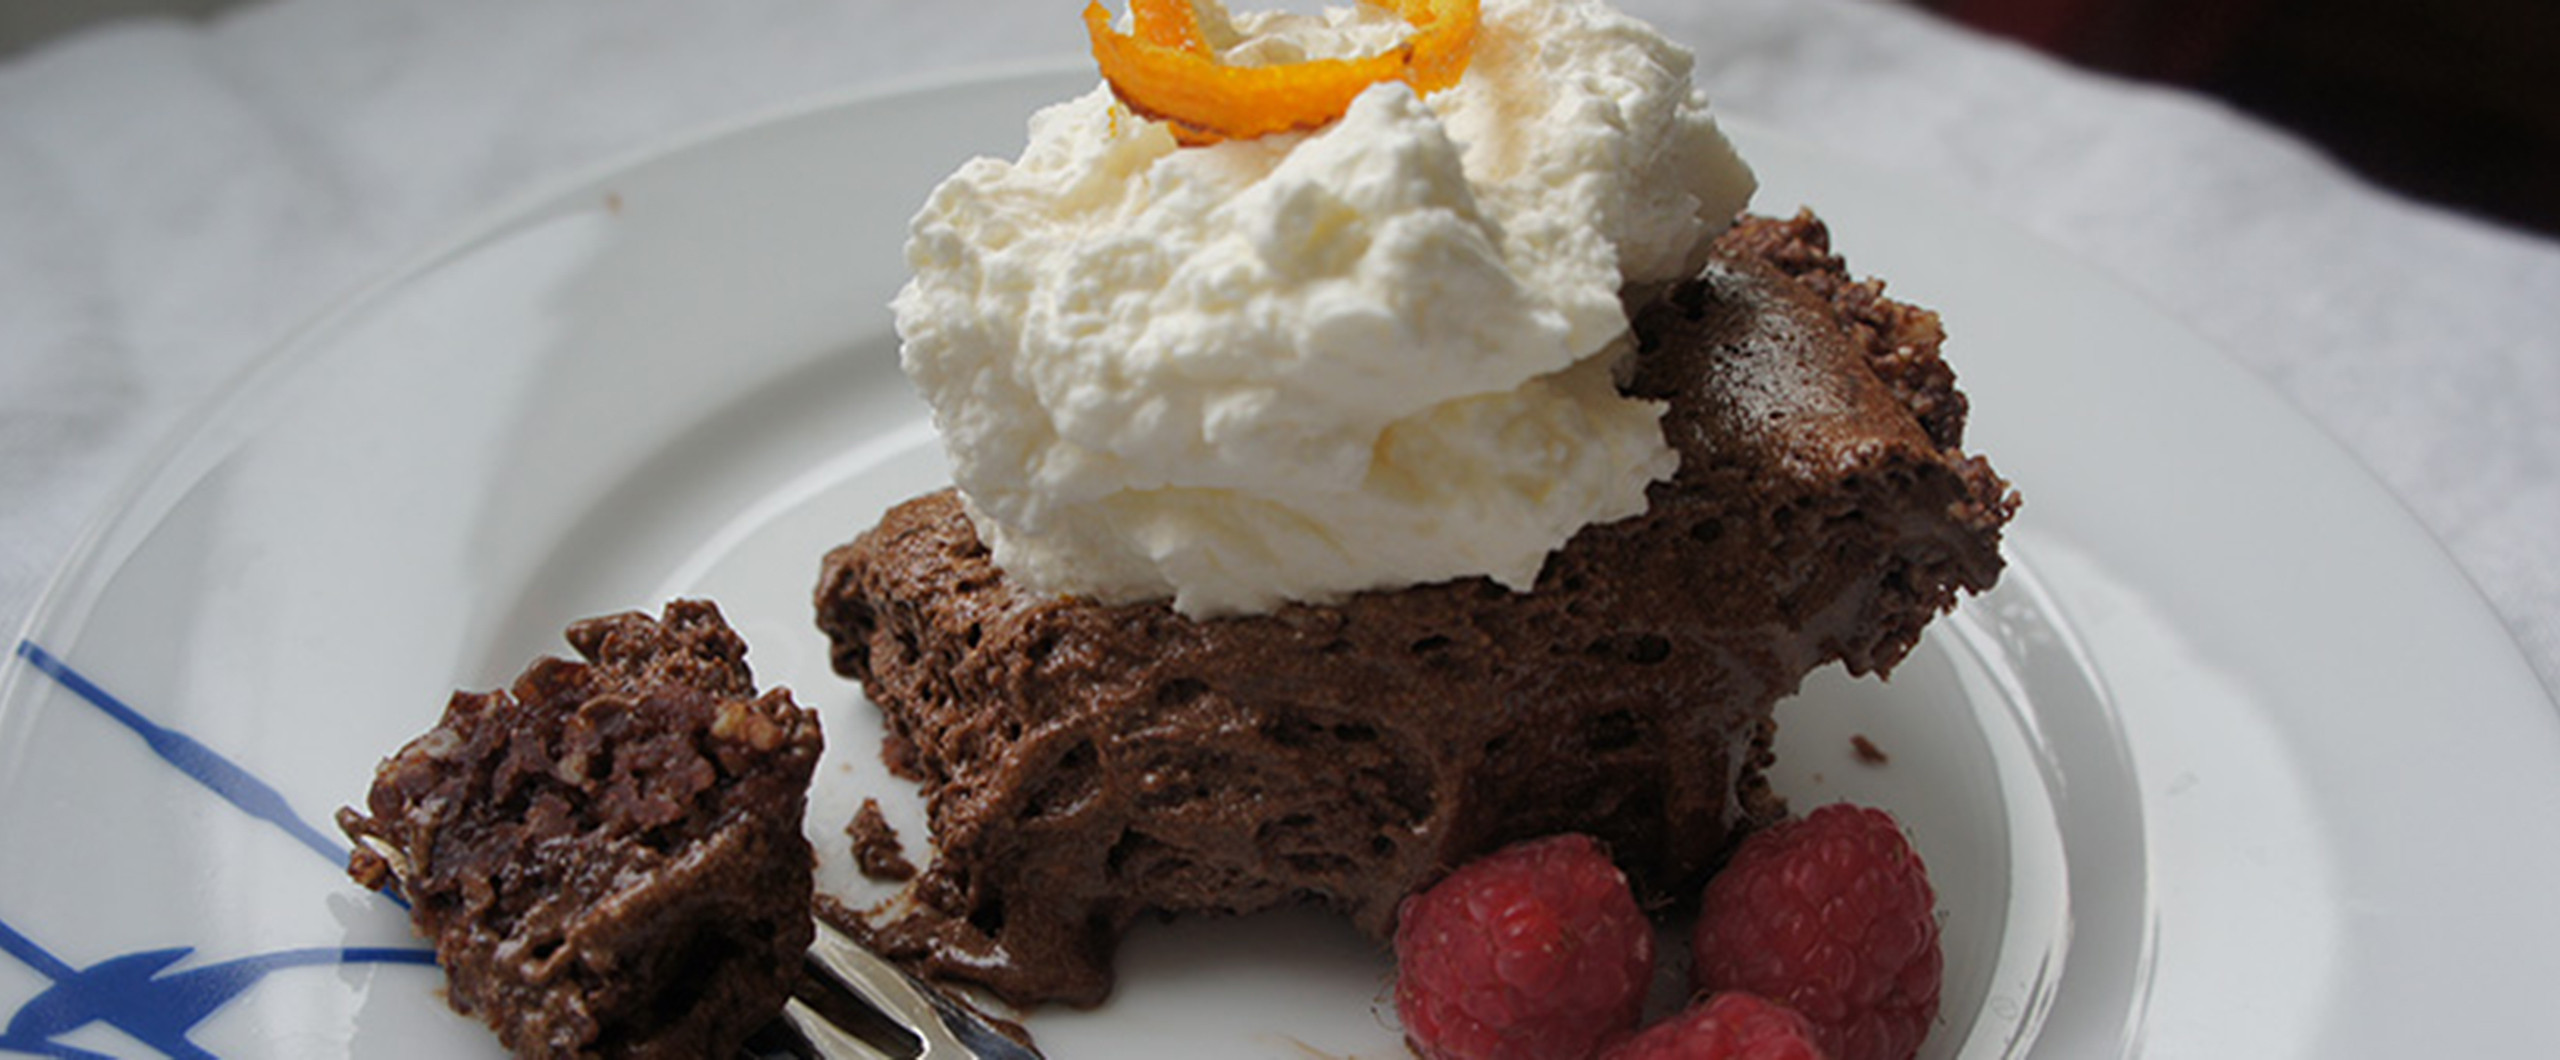 Traditional Passover Desserts  The Ultimate Desserts for Your Passover Seder – Tablet